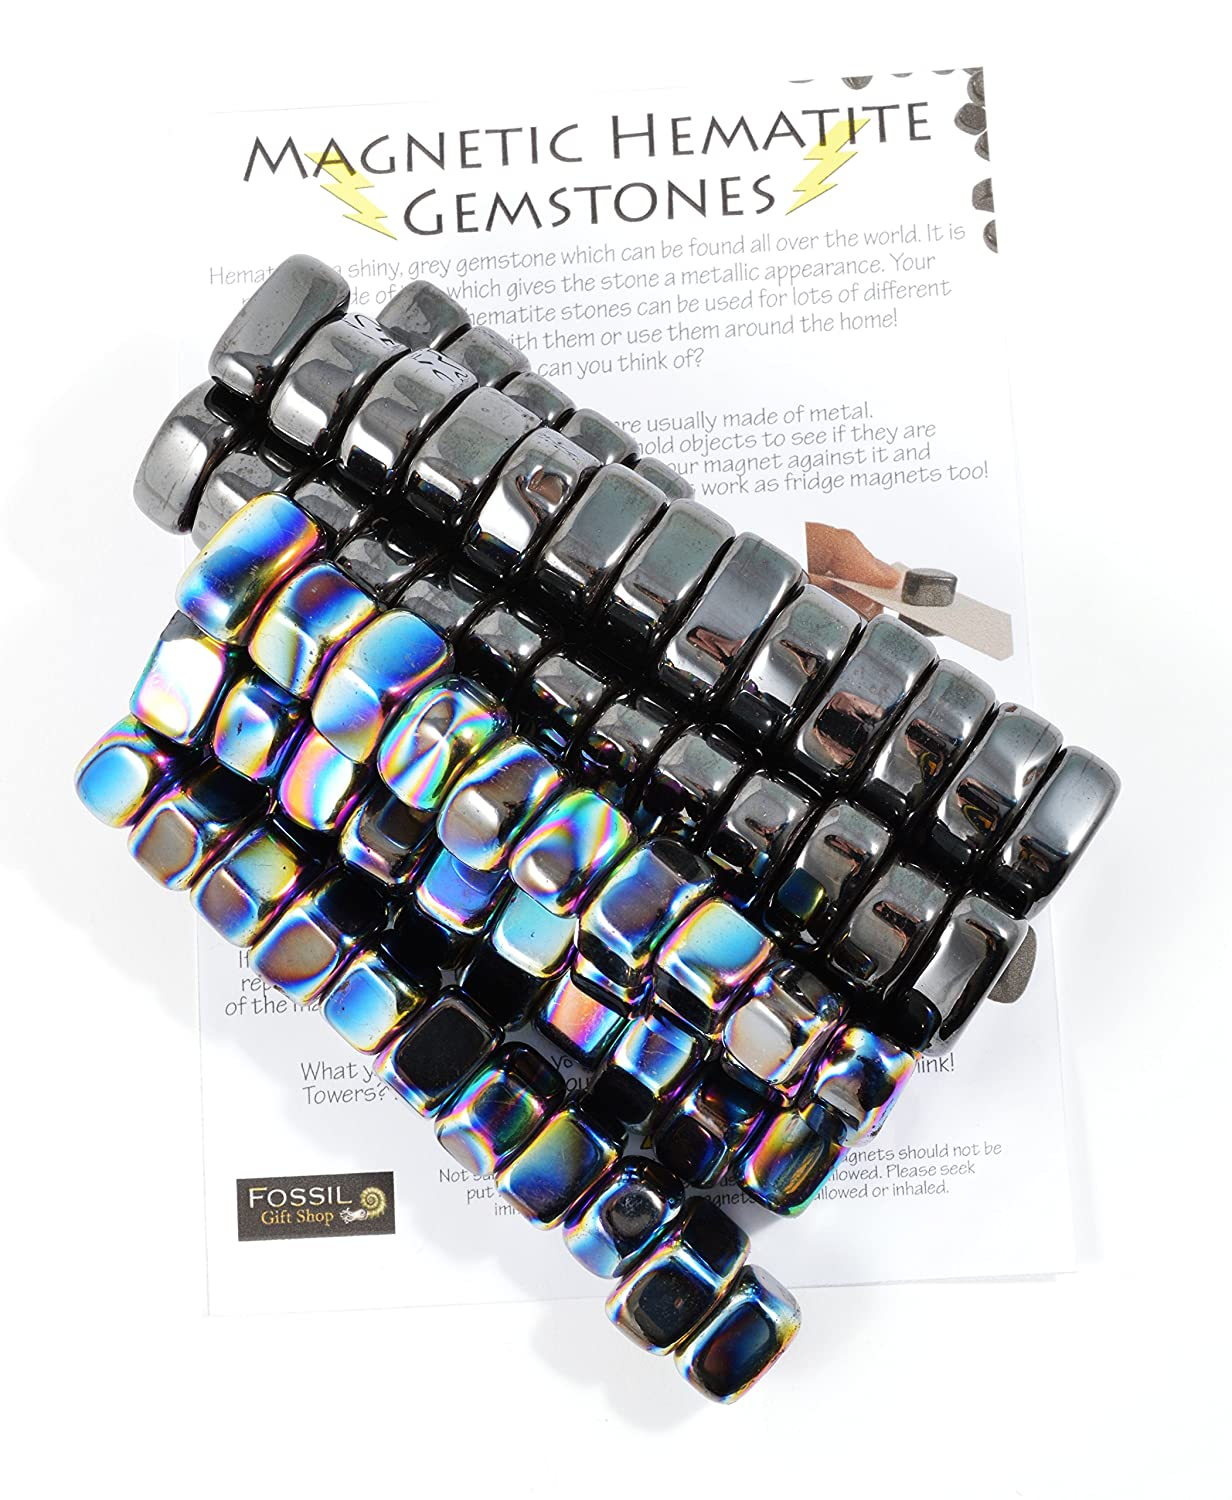 100 Mixed Hematite & Iridescent Magnets - Information Sheet Included! Fossil Gift Shop